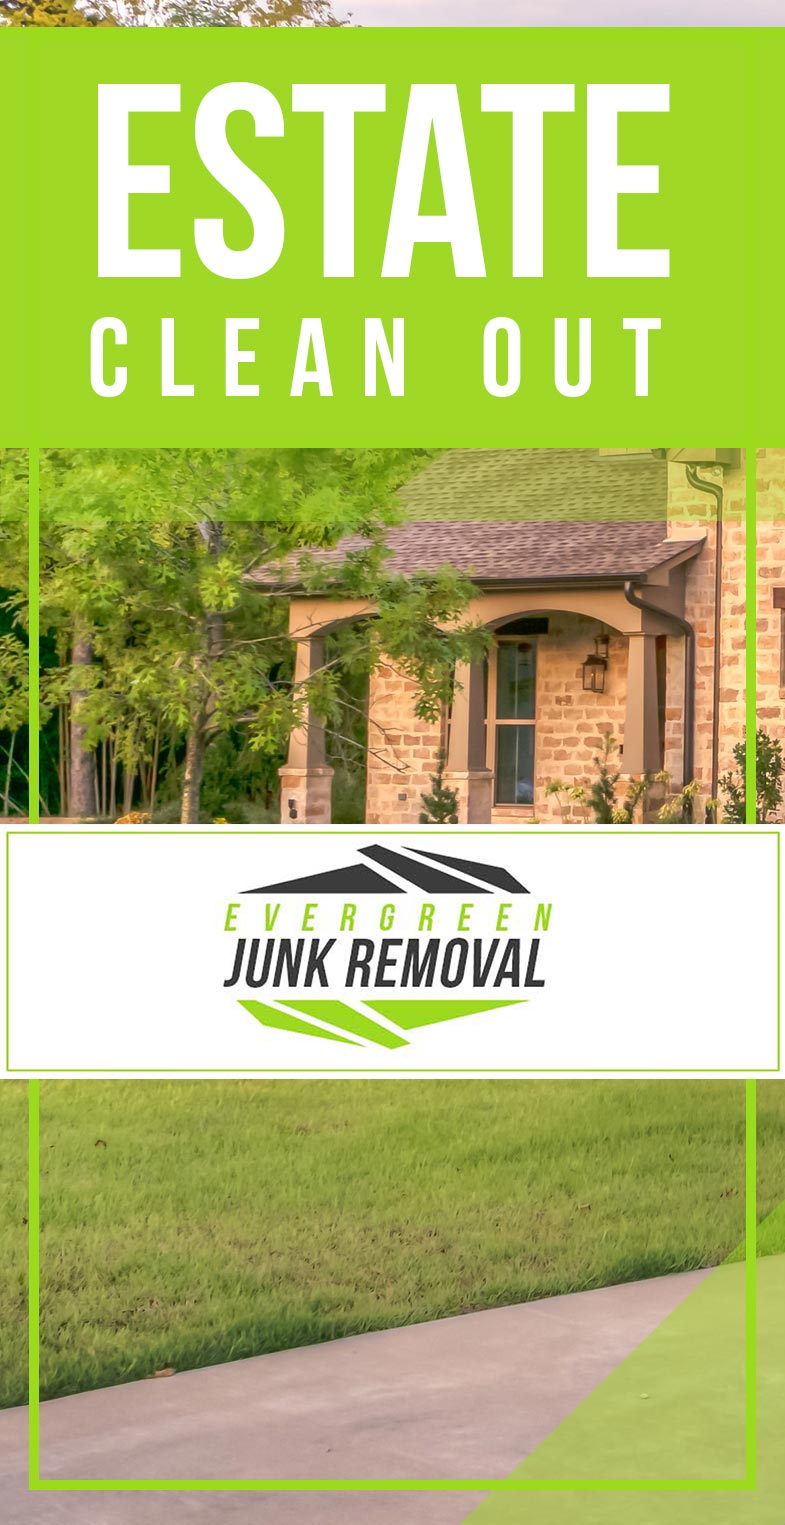 Junk Removal South Bay Estate Clean Out